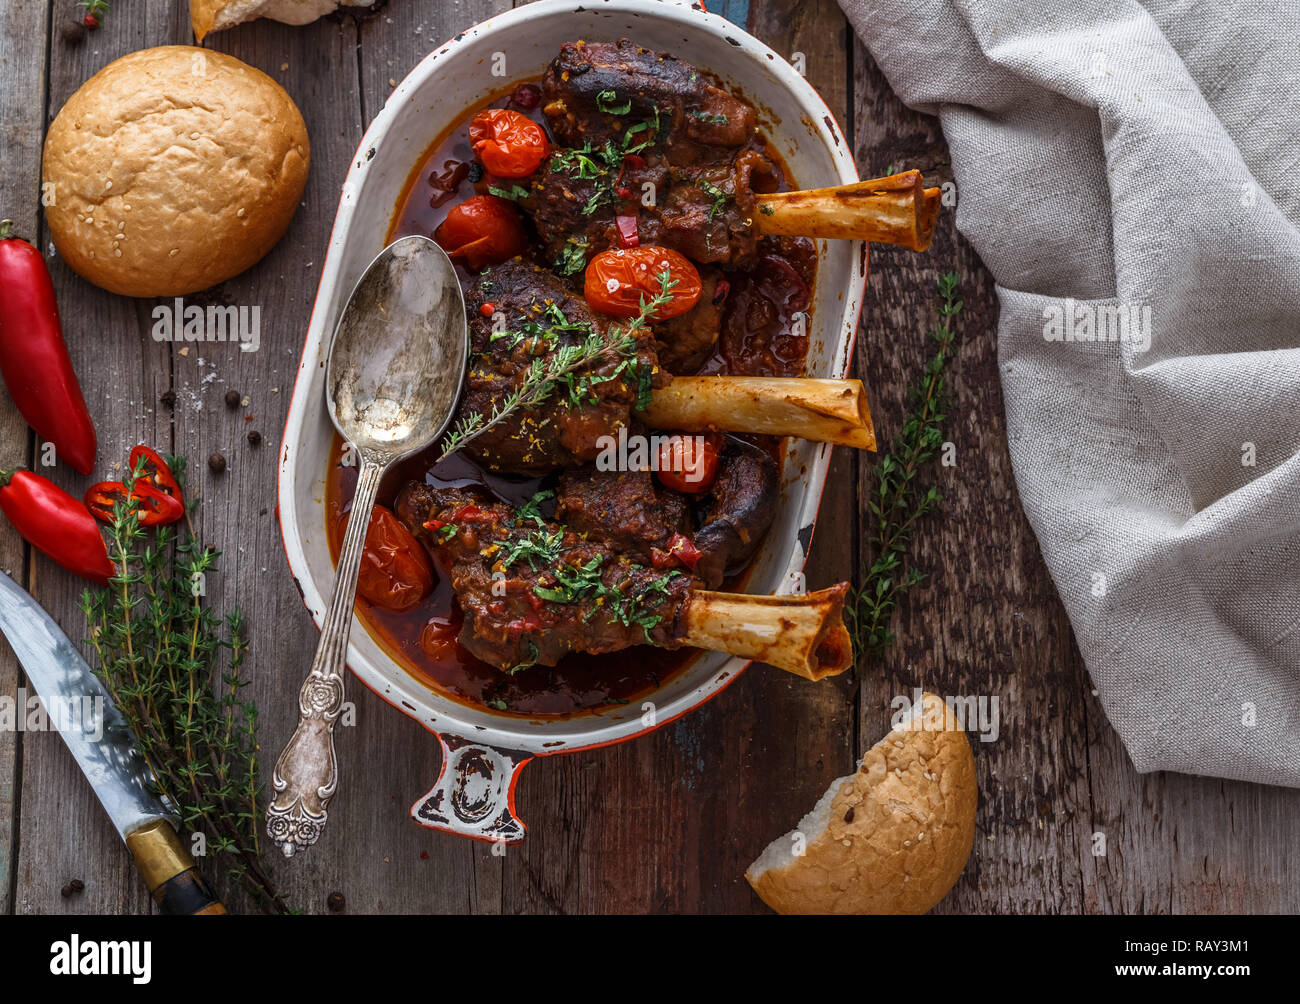 Slowly cooked lamb with tomato sauce and bread, turkish cuisine. - Stock Image